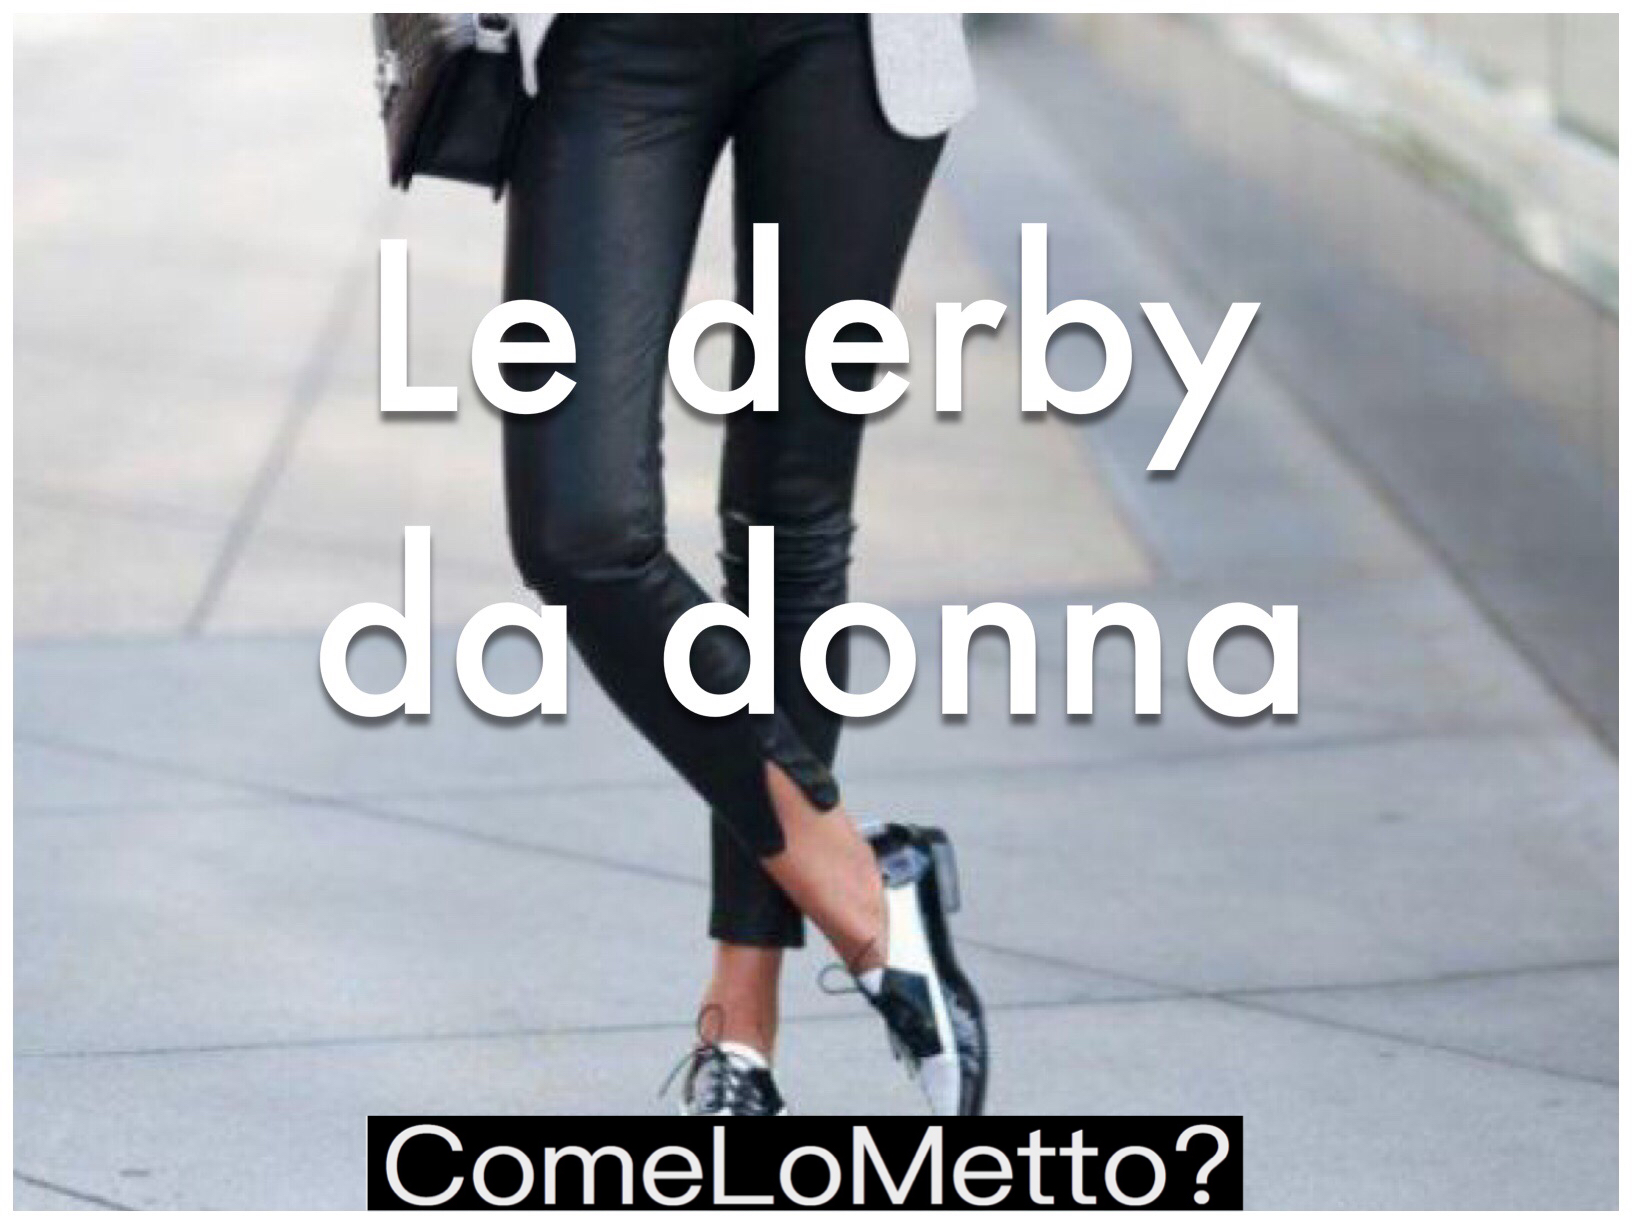 Come lo metto: le derby stringate